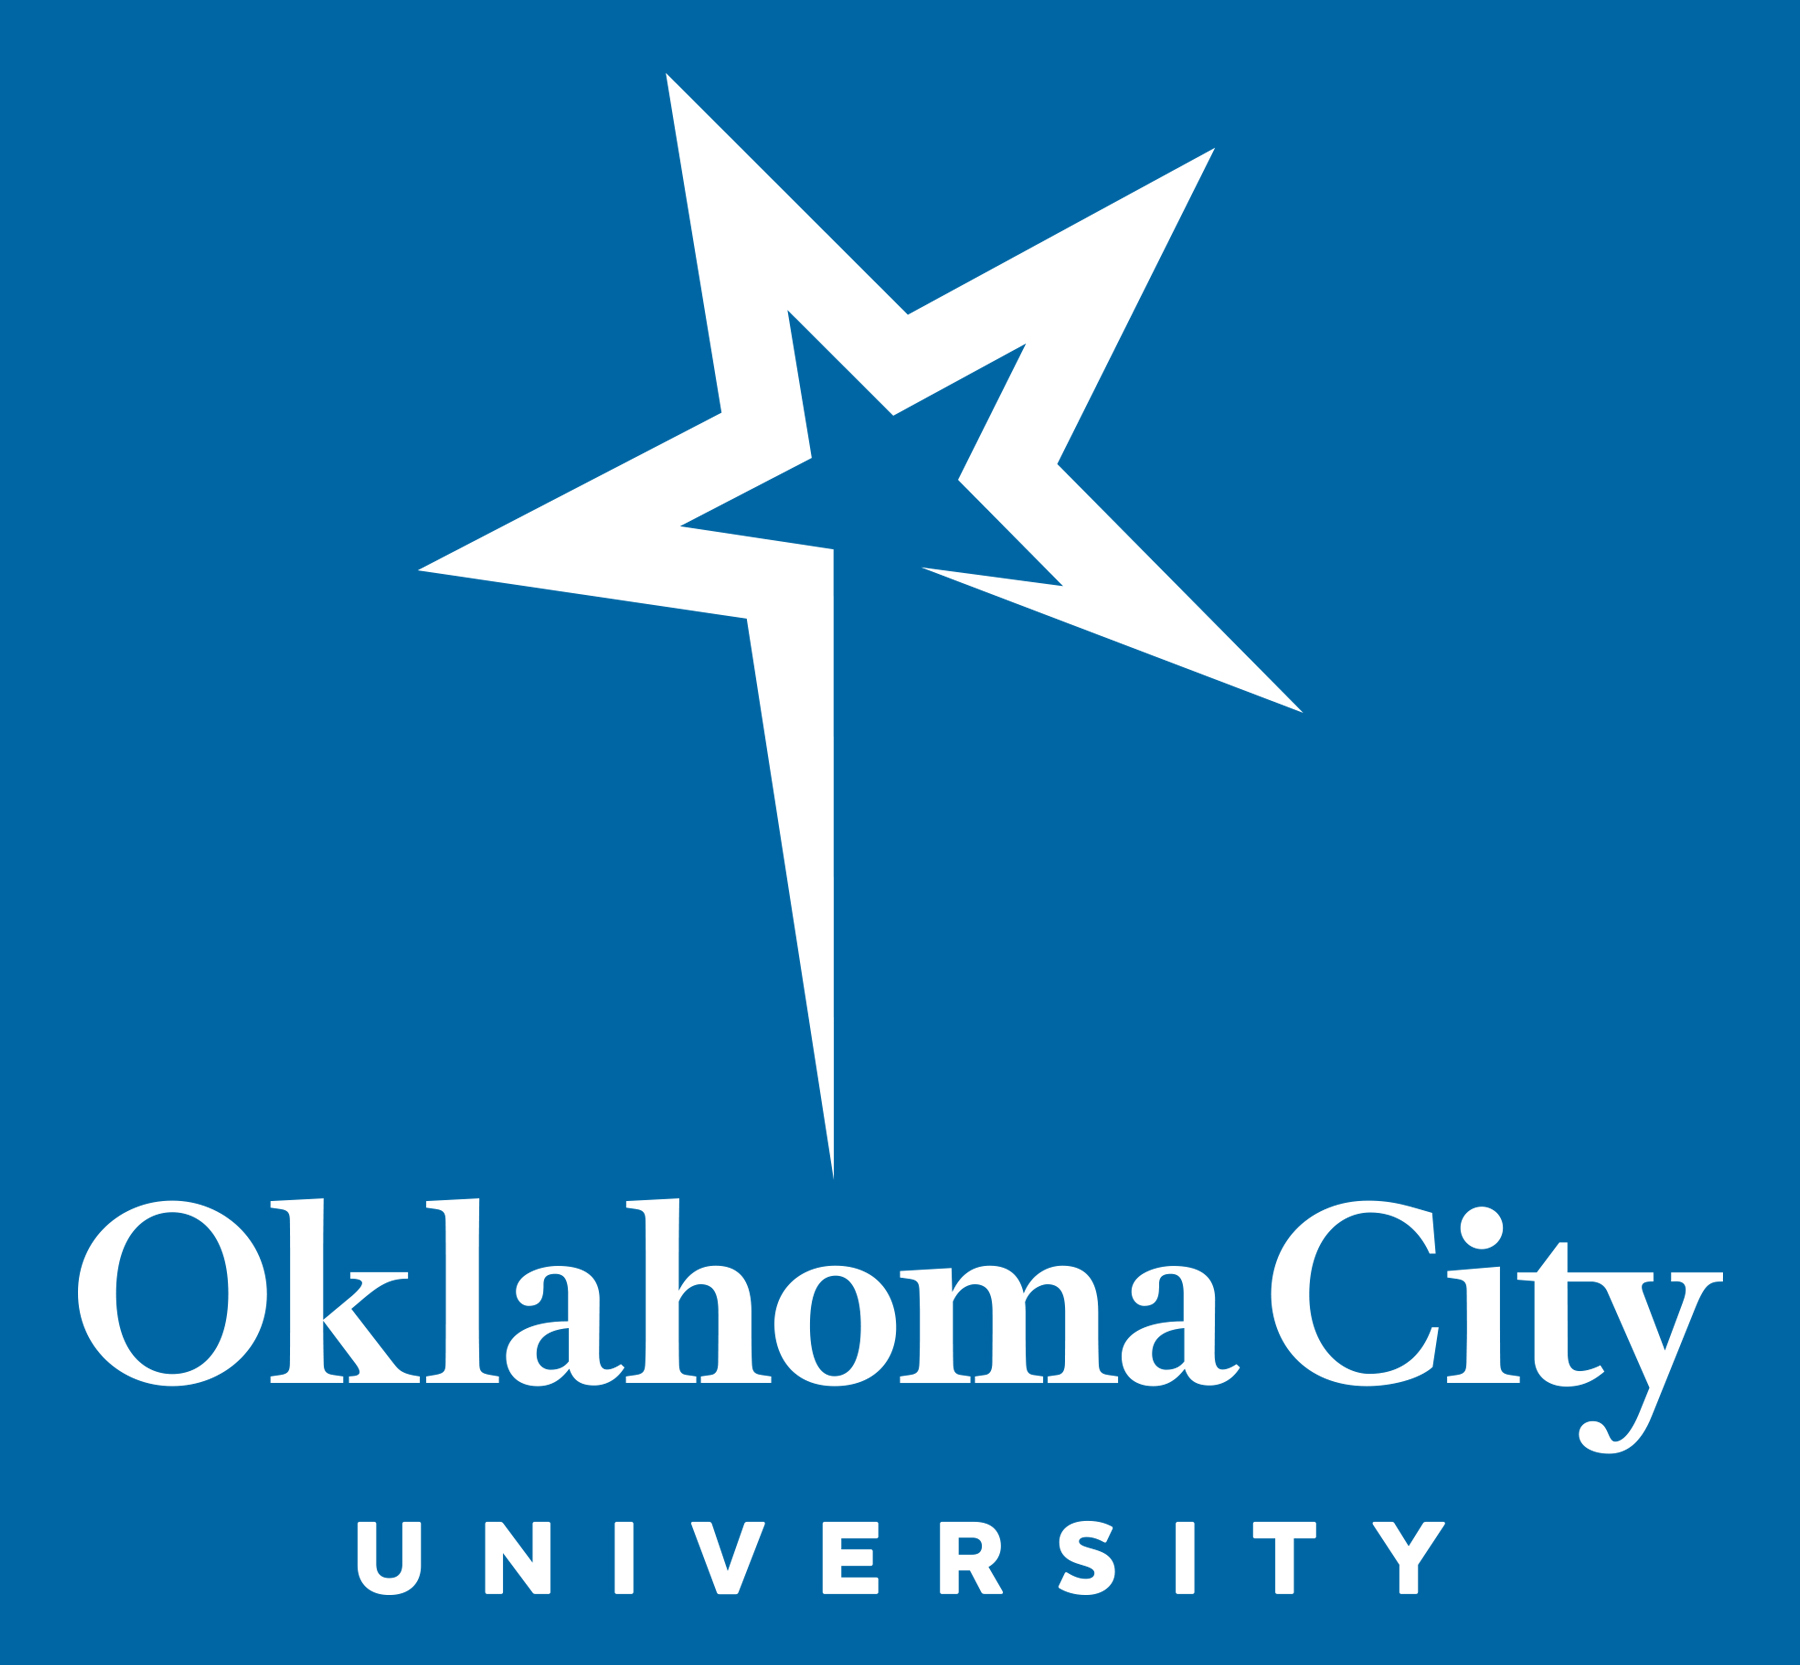 College Oklahoma City University